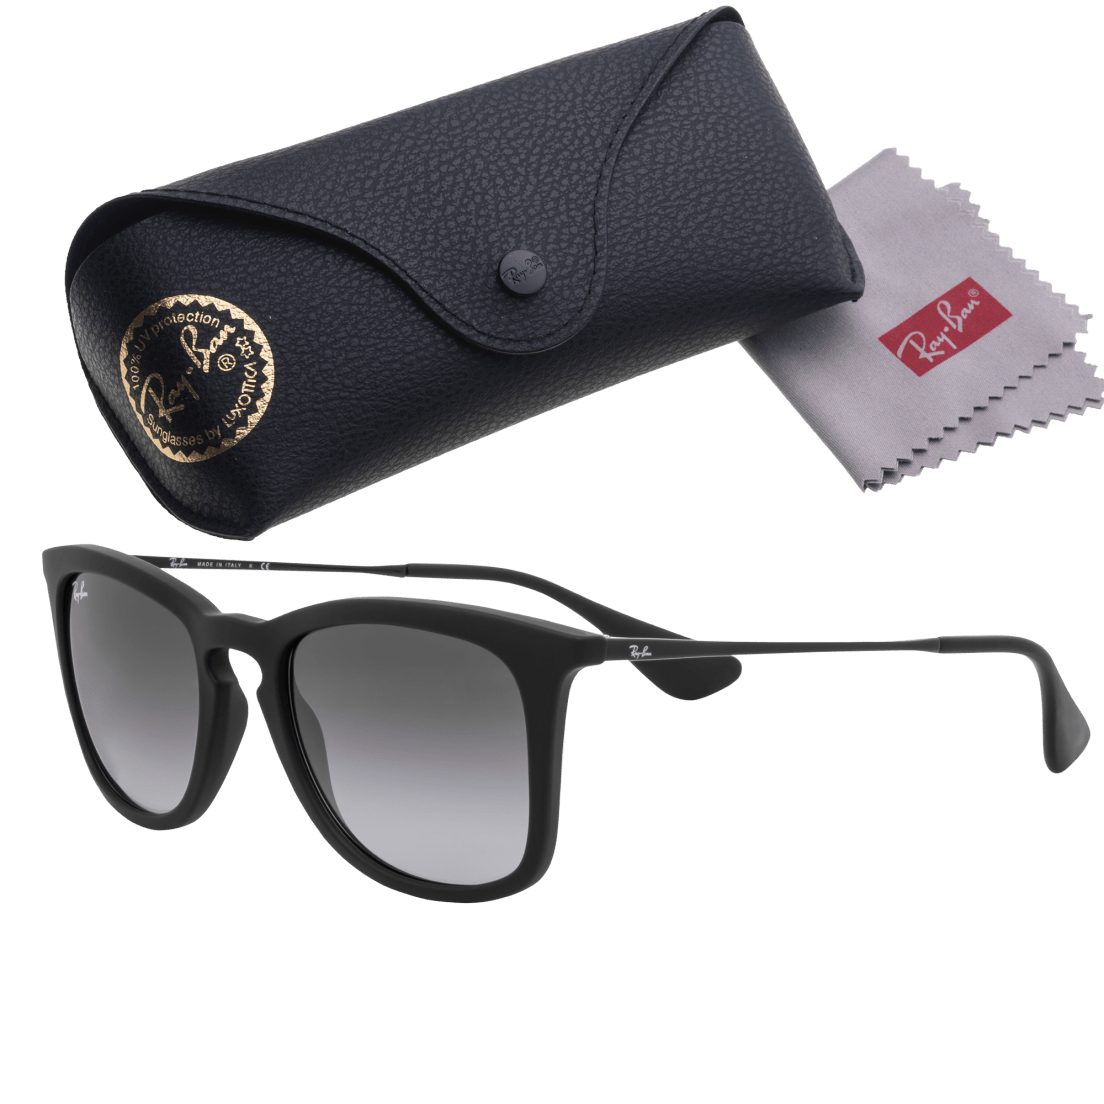 8c817331dd Ray-Ban RB4221 Sunglasses with Black Grey Gradient Lenses